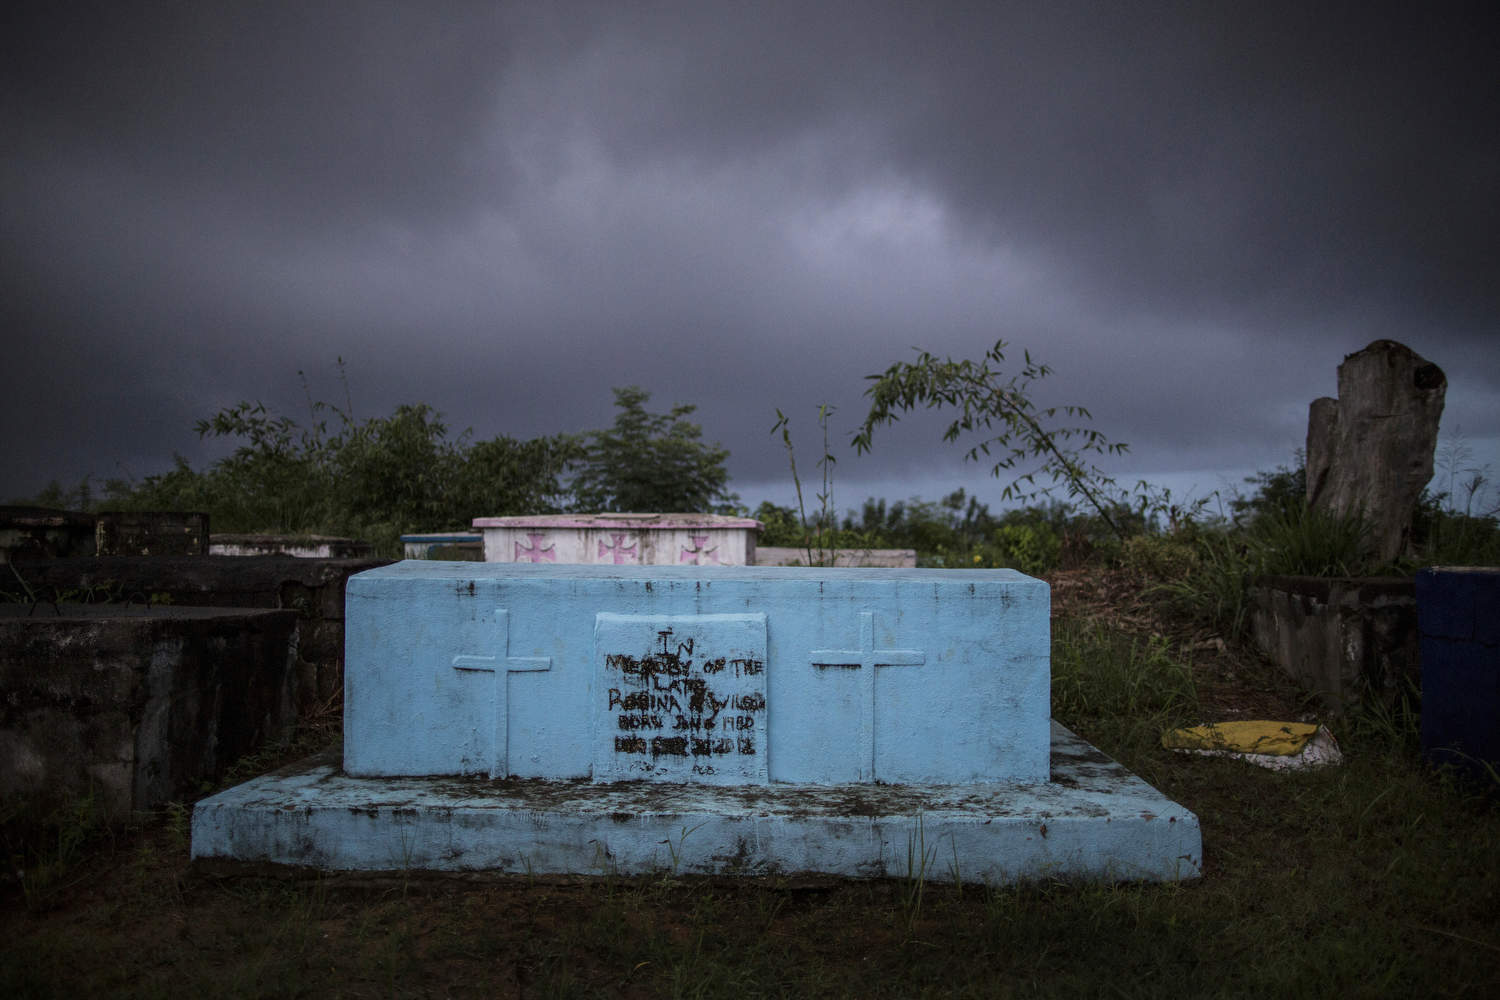 The graveyard in southeast Liberia right before a rain storm. Harper was once beautiful and prosperous, but the remote town now only has signs of better times. Photo by @glennagordon for @smithsonianmag#Liberia #Africa #WestAfrica #EverydayAfrica #antebellum #architecture #Harper #remote #seaside #decay #traces